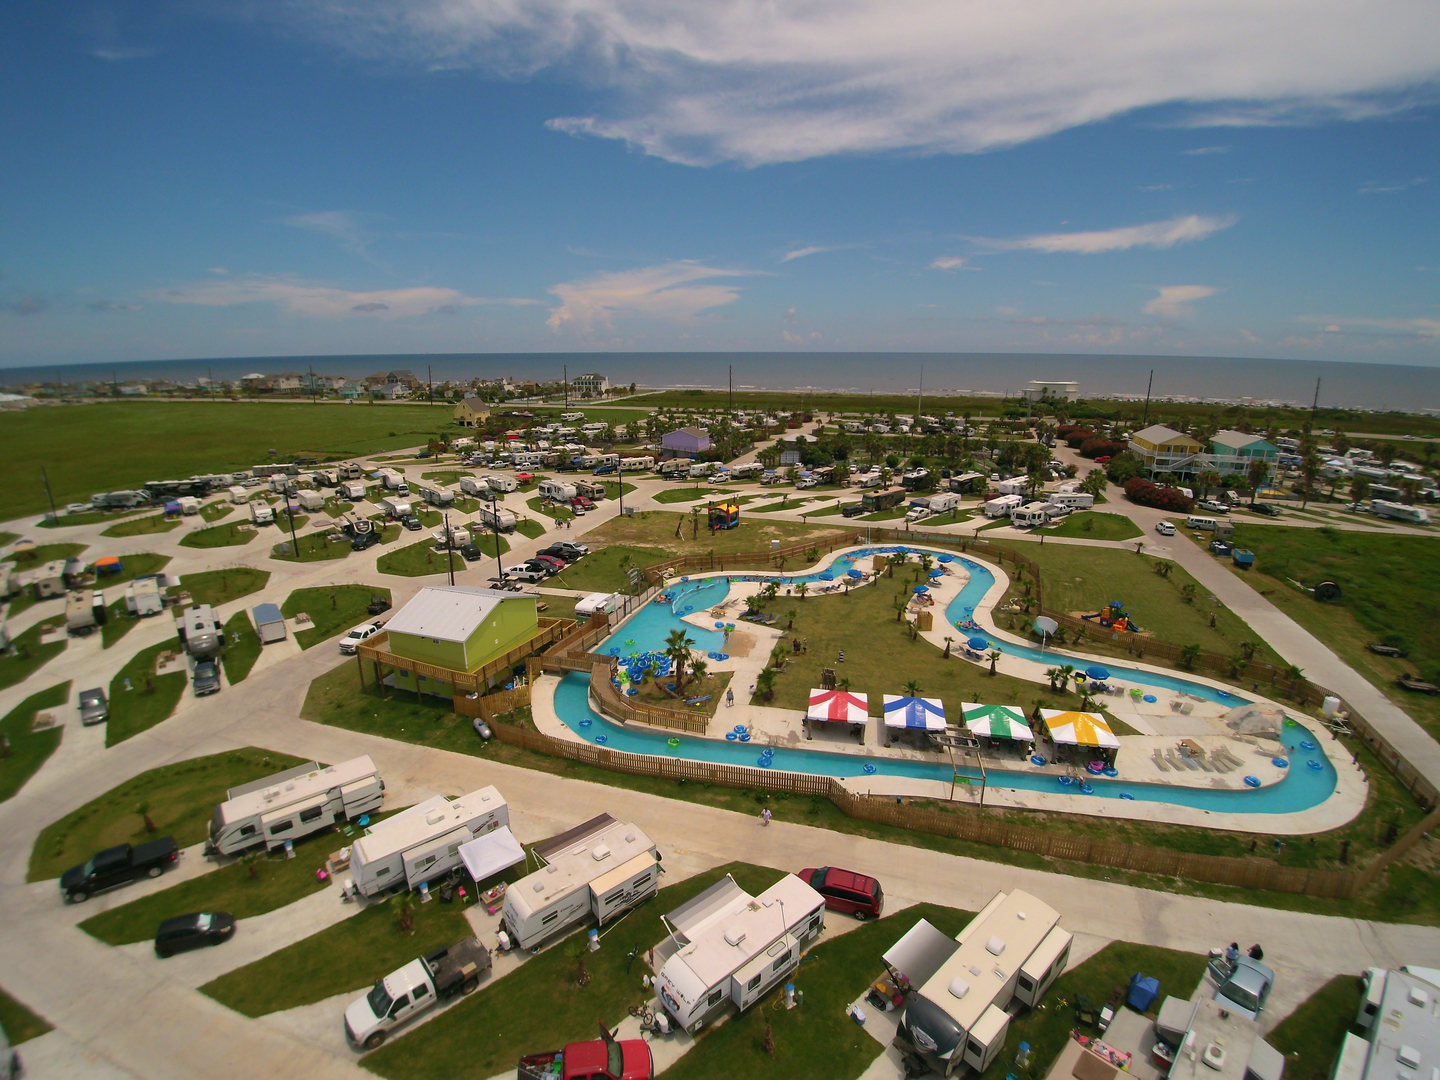 GALVESTON, TX - Jamaica Beach RV Resort17200 Termini-San Luis Pass RdGalveston, TX 77554… because what beats a beach front RV park with a lazy river in 70 degree weather with your RV friends!?